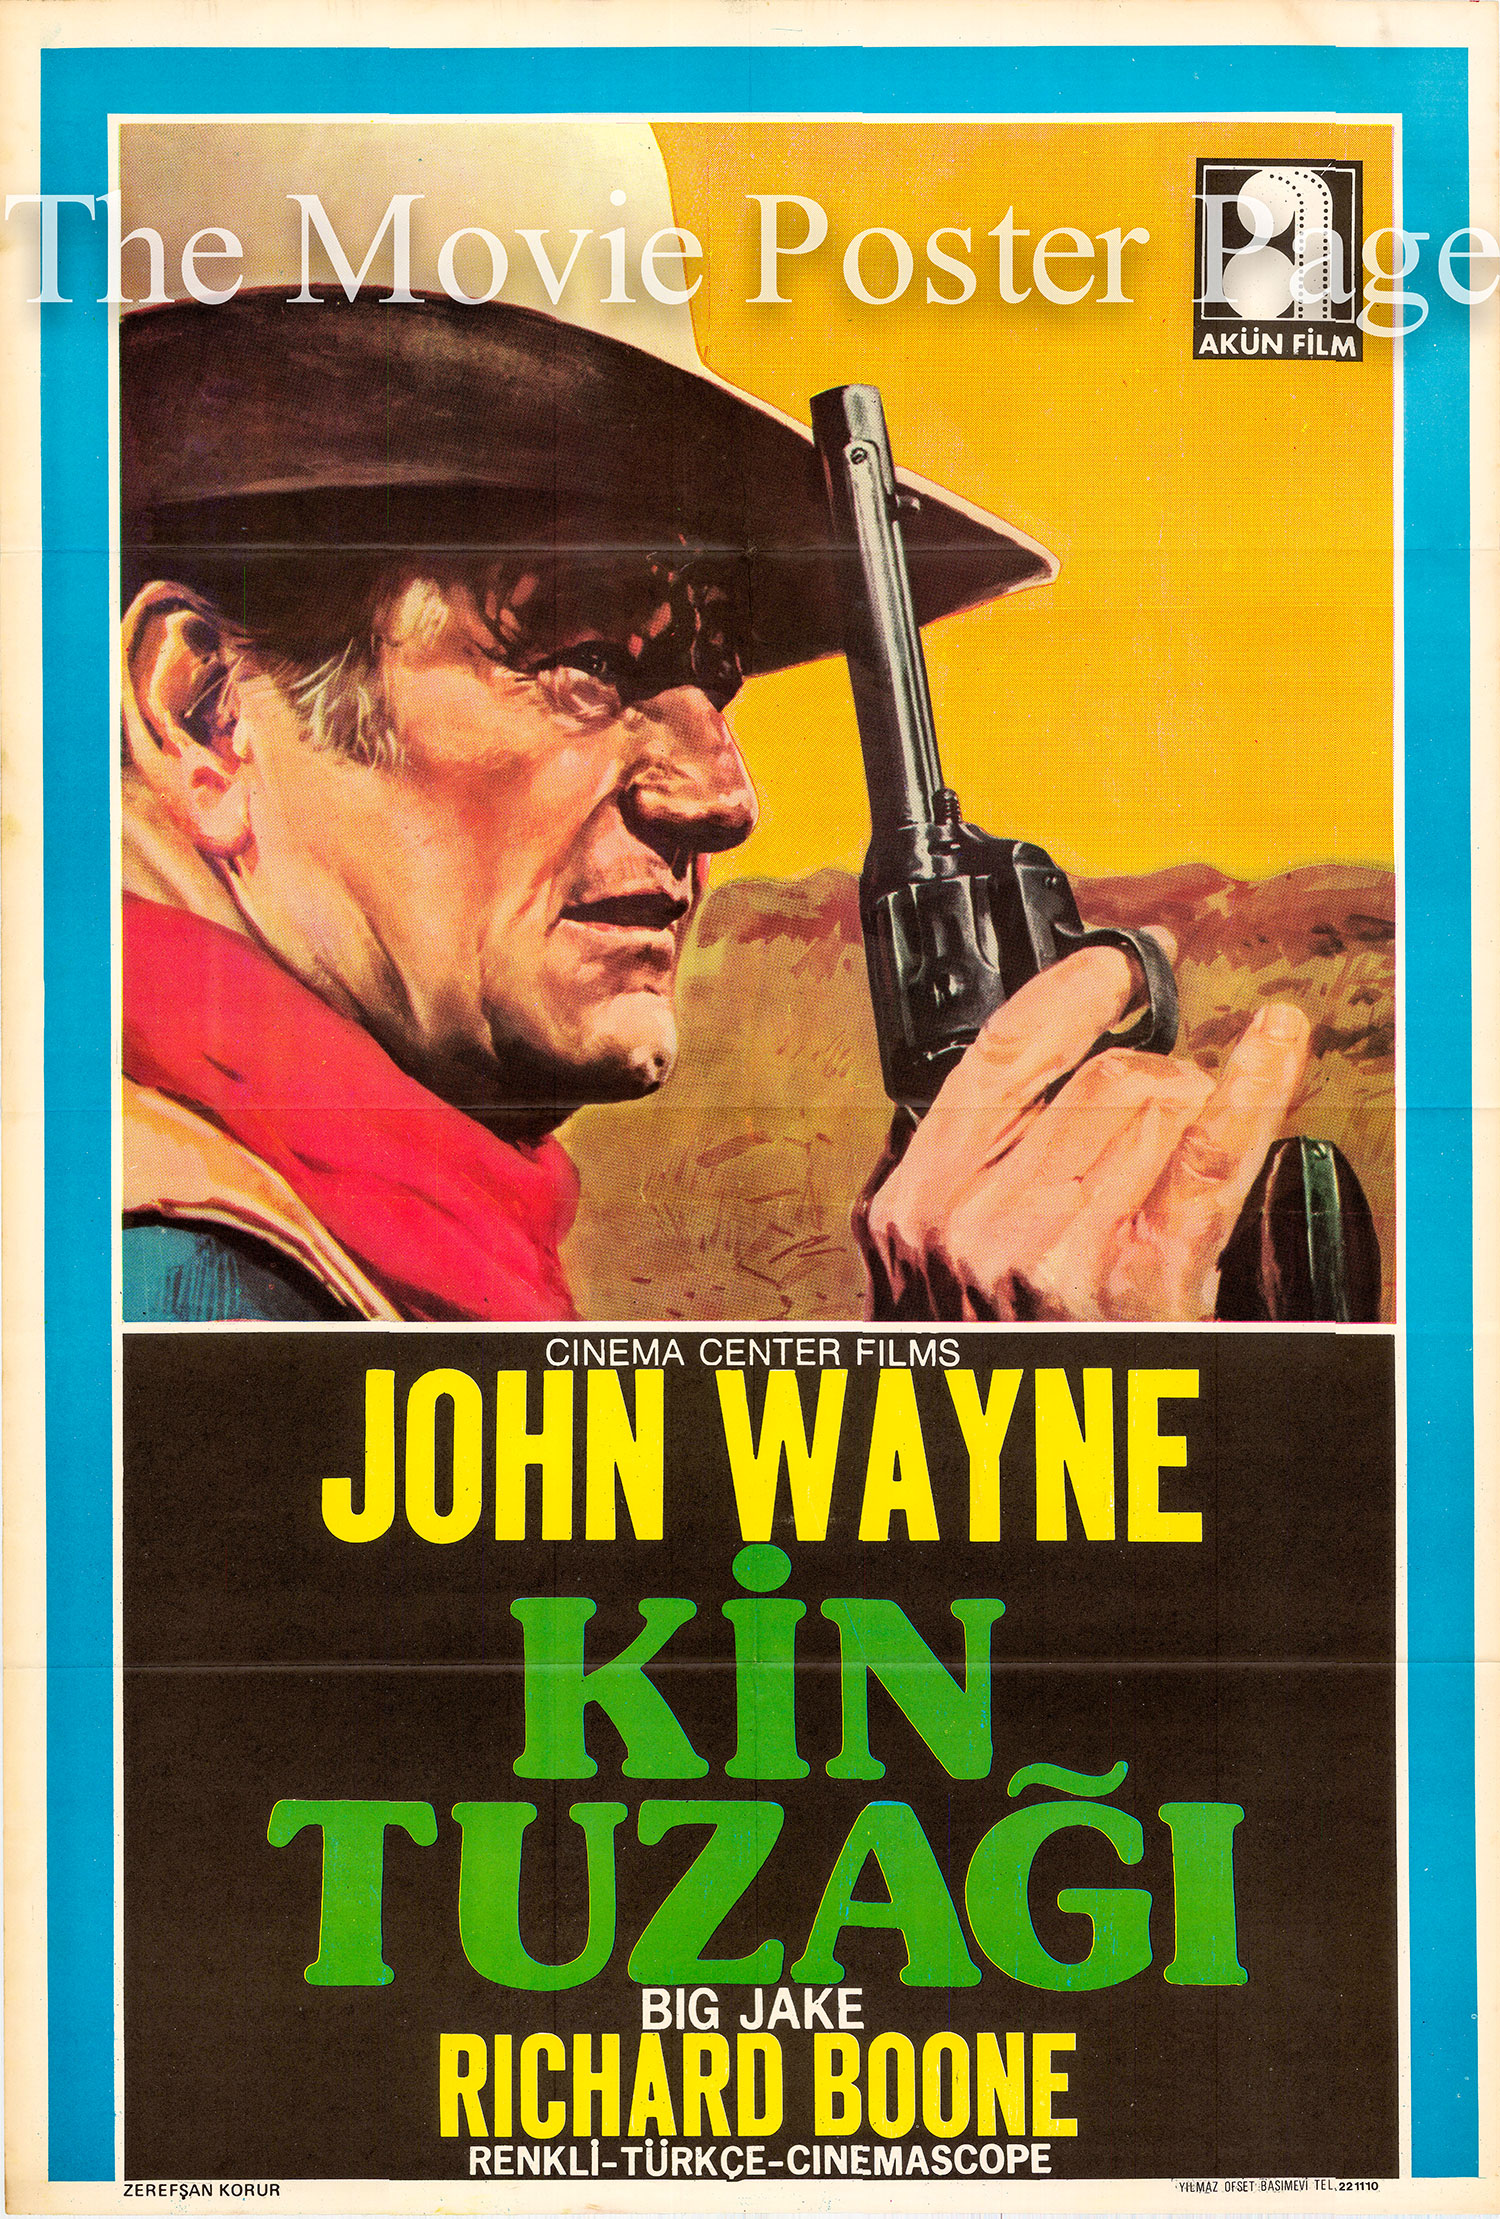 Pictured is a Turkish one-sheet poster for the 1971 George Sherman and John Wayne film Big Jake starring John Wayne as Jacob McCandles.